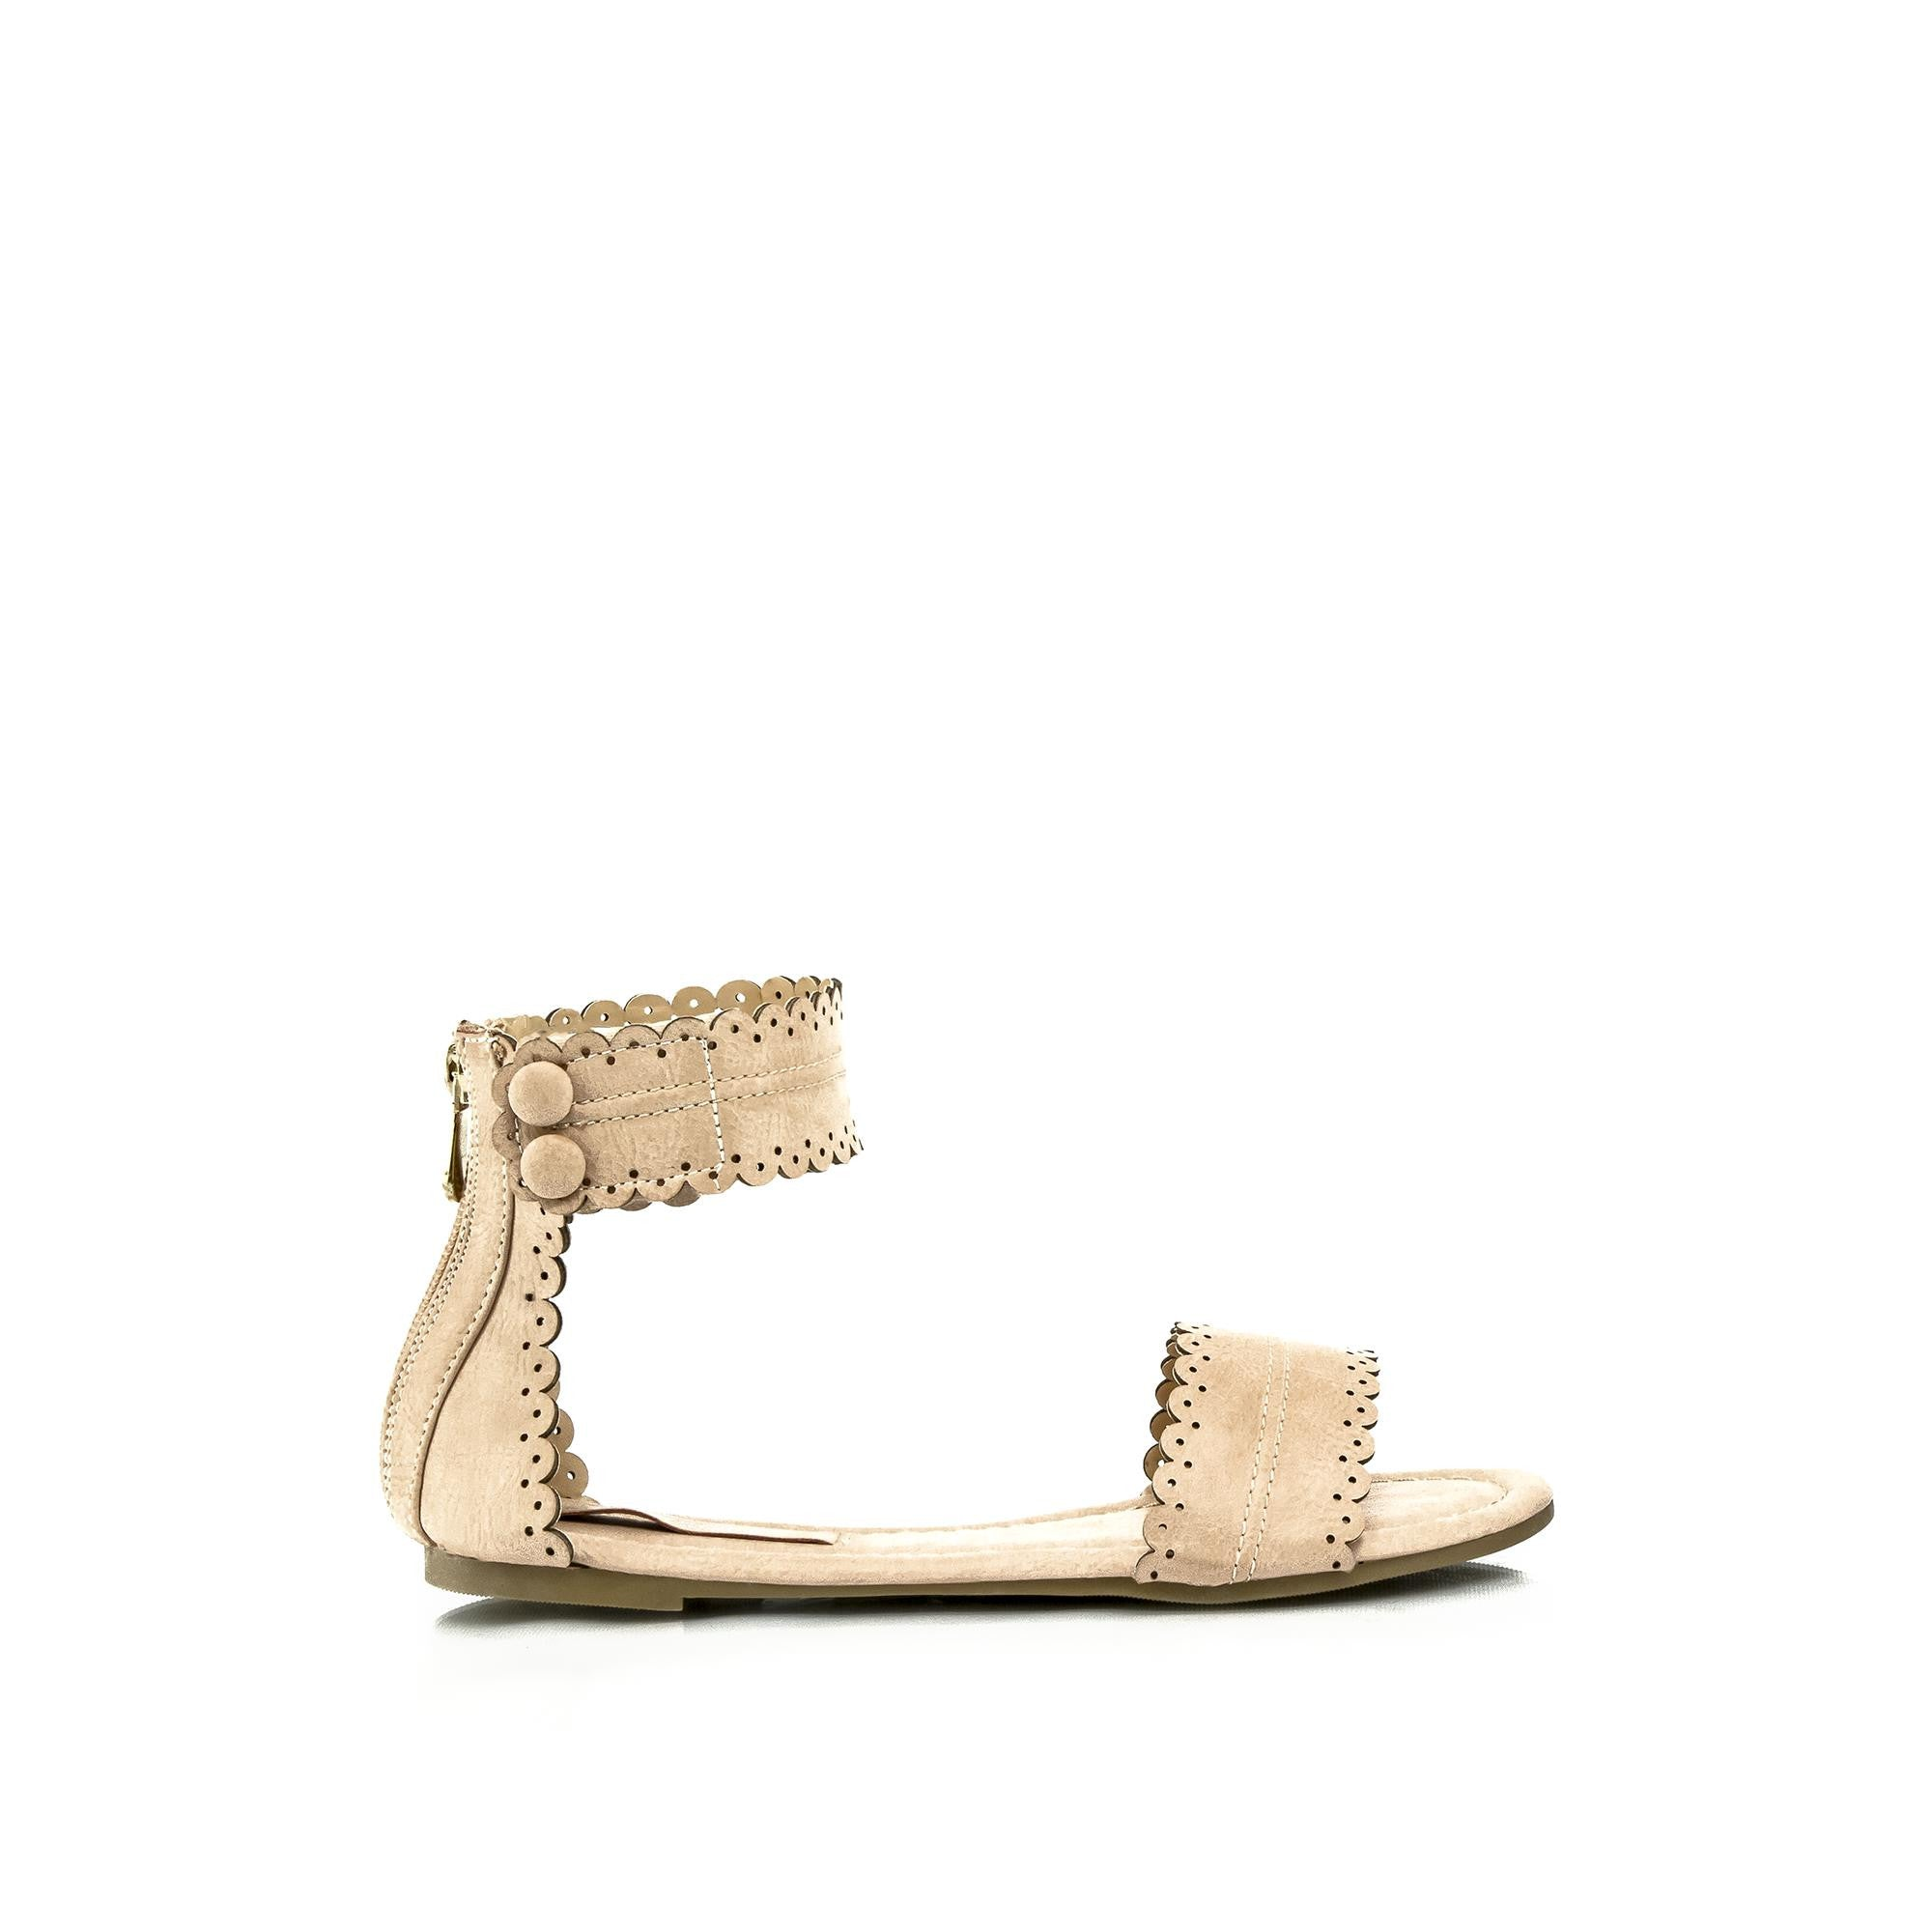 ABBEY Scalloped Sandals